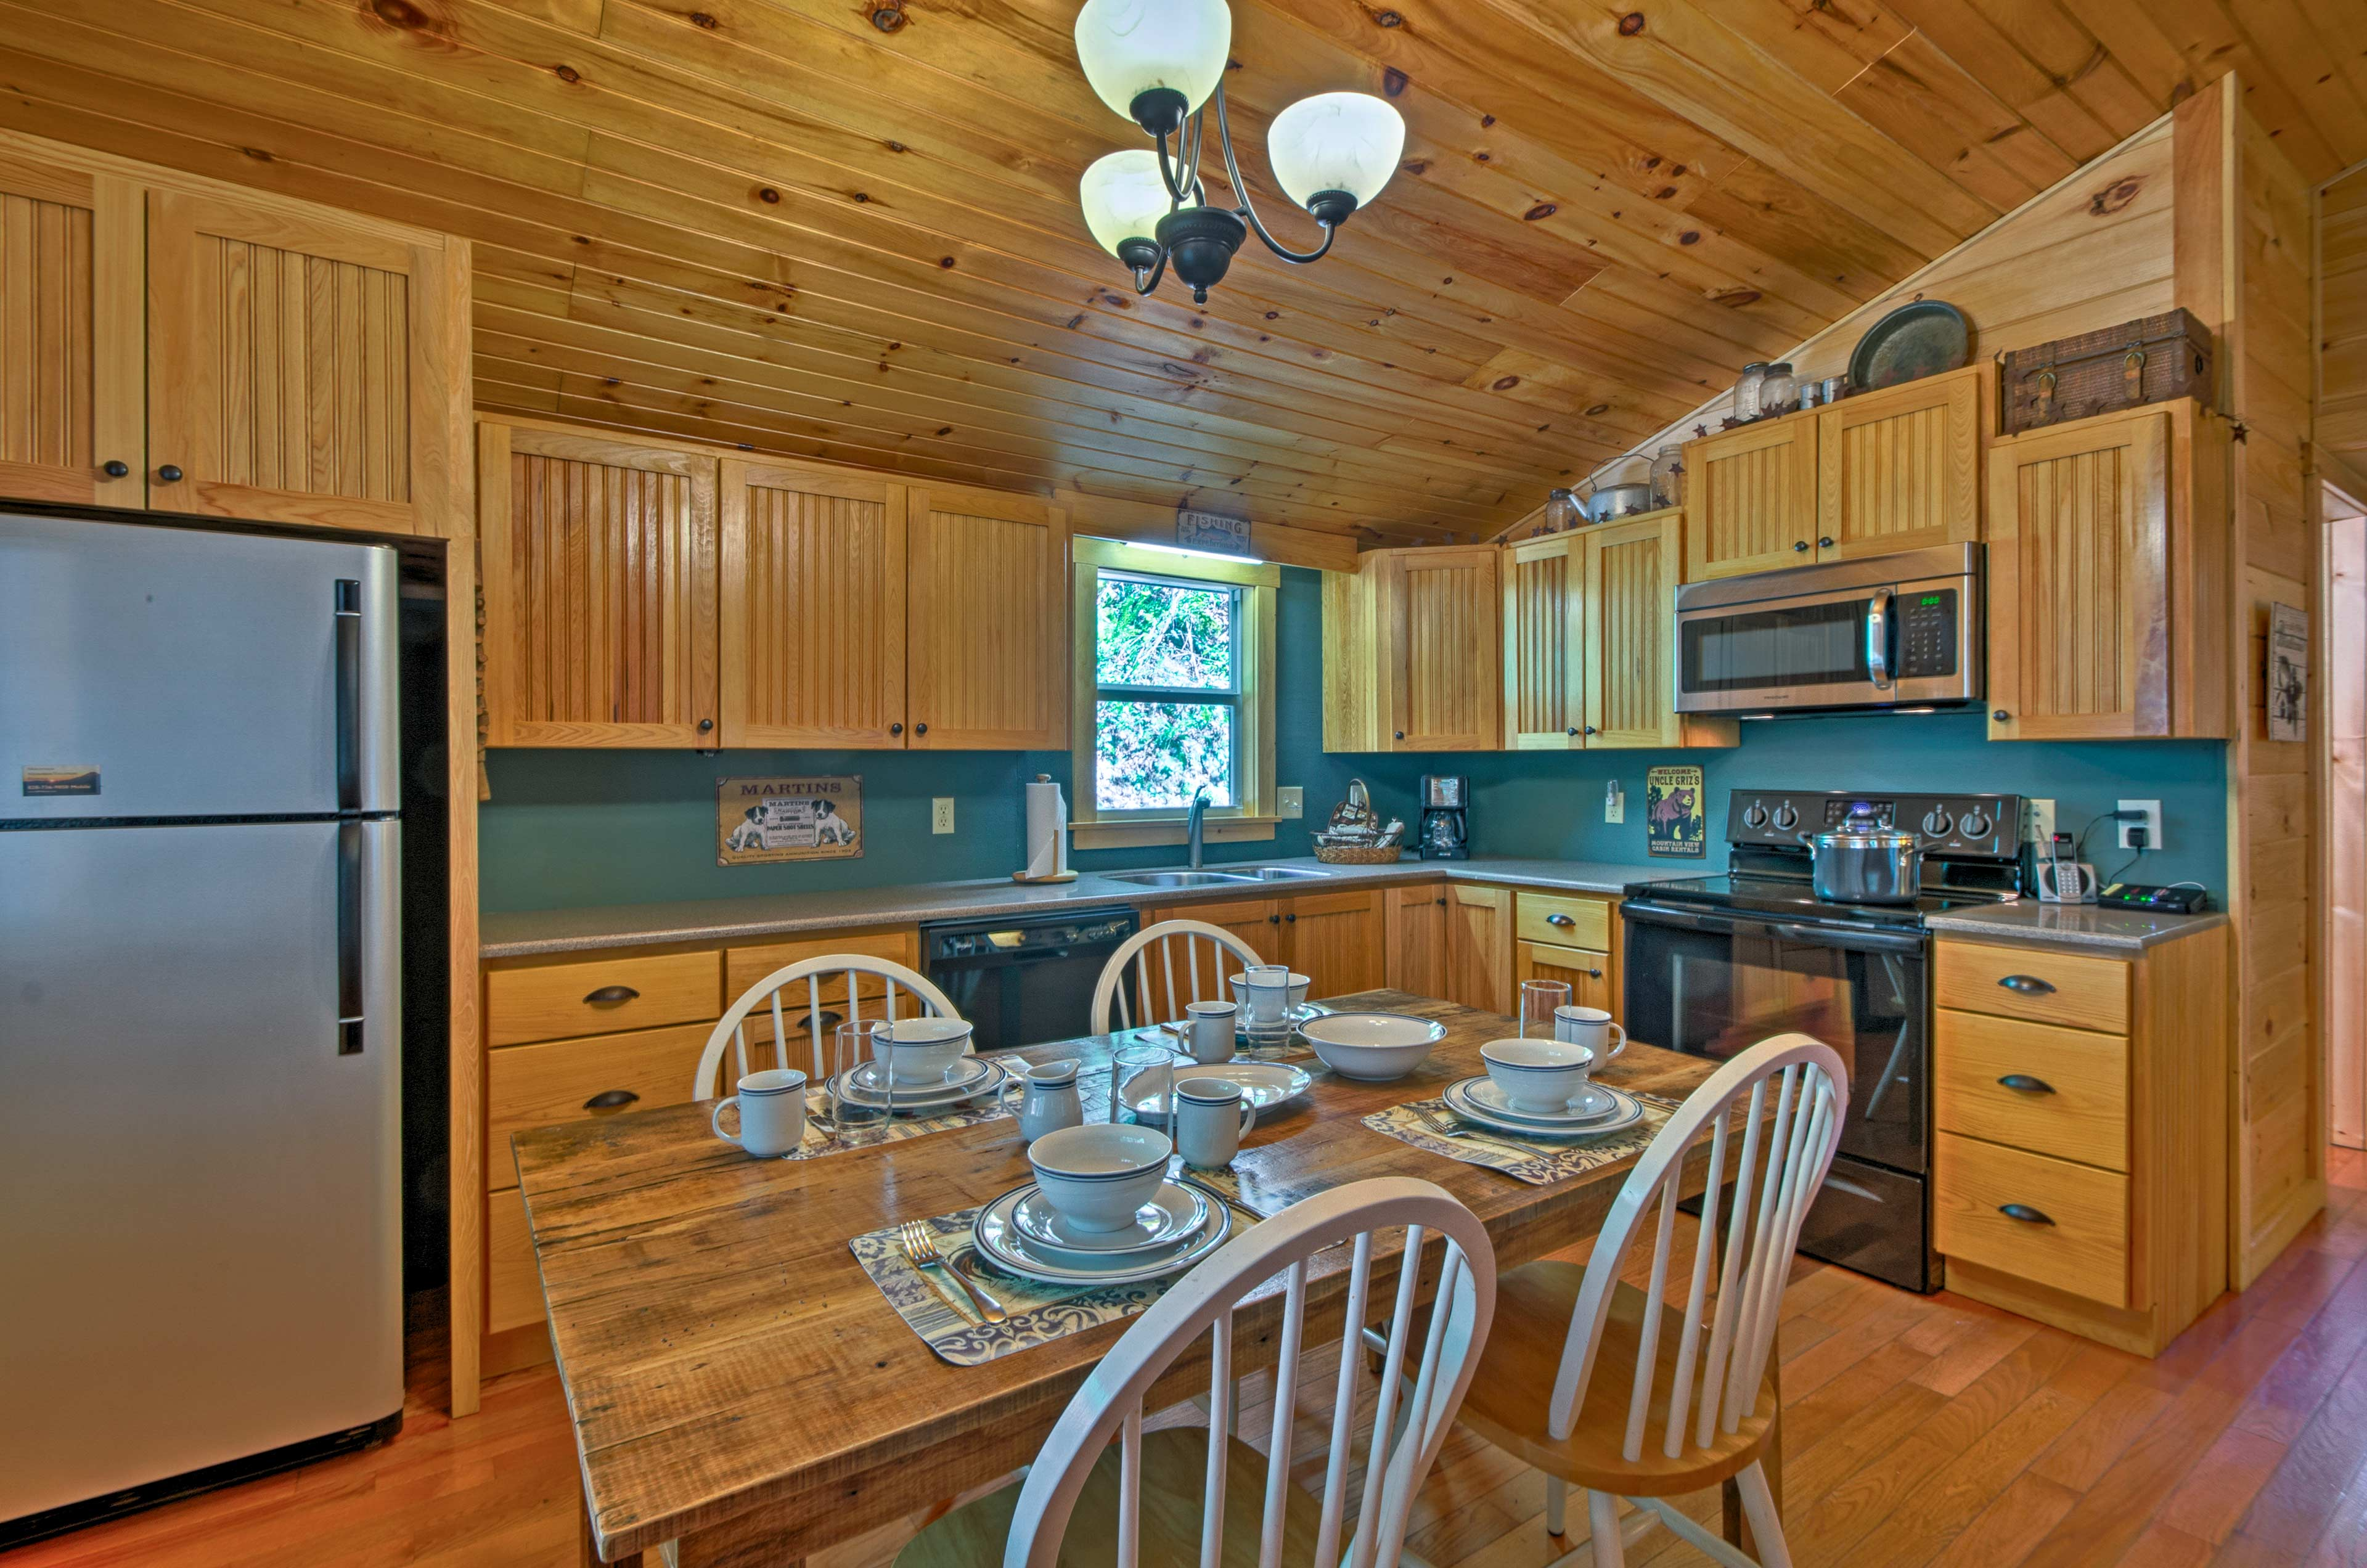 The kitchen is fully equipped to handle all of your home-cooking needs.